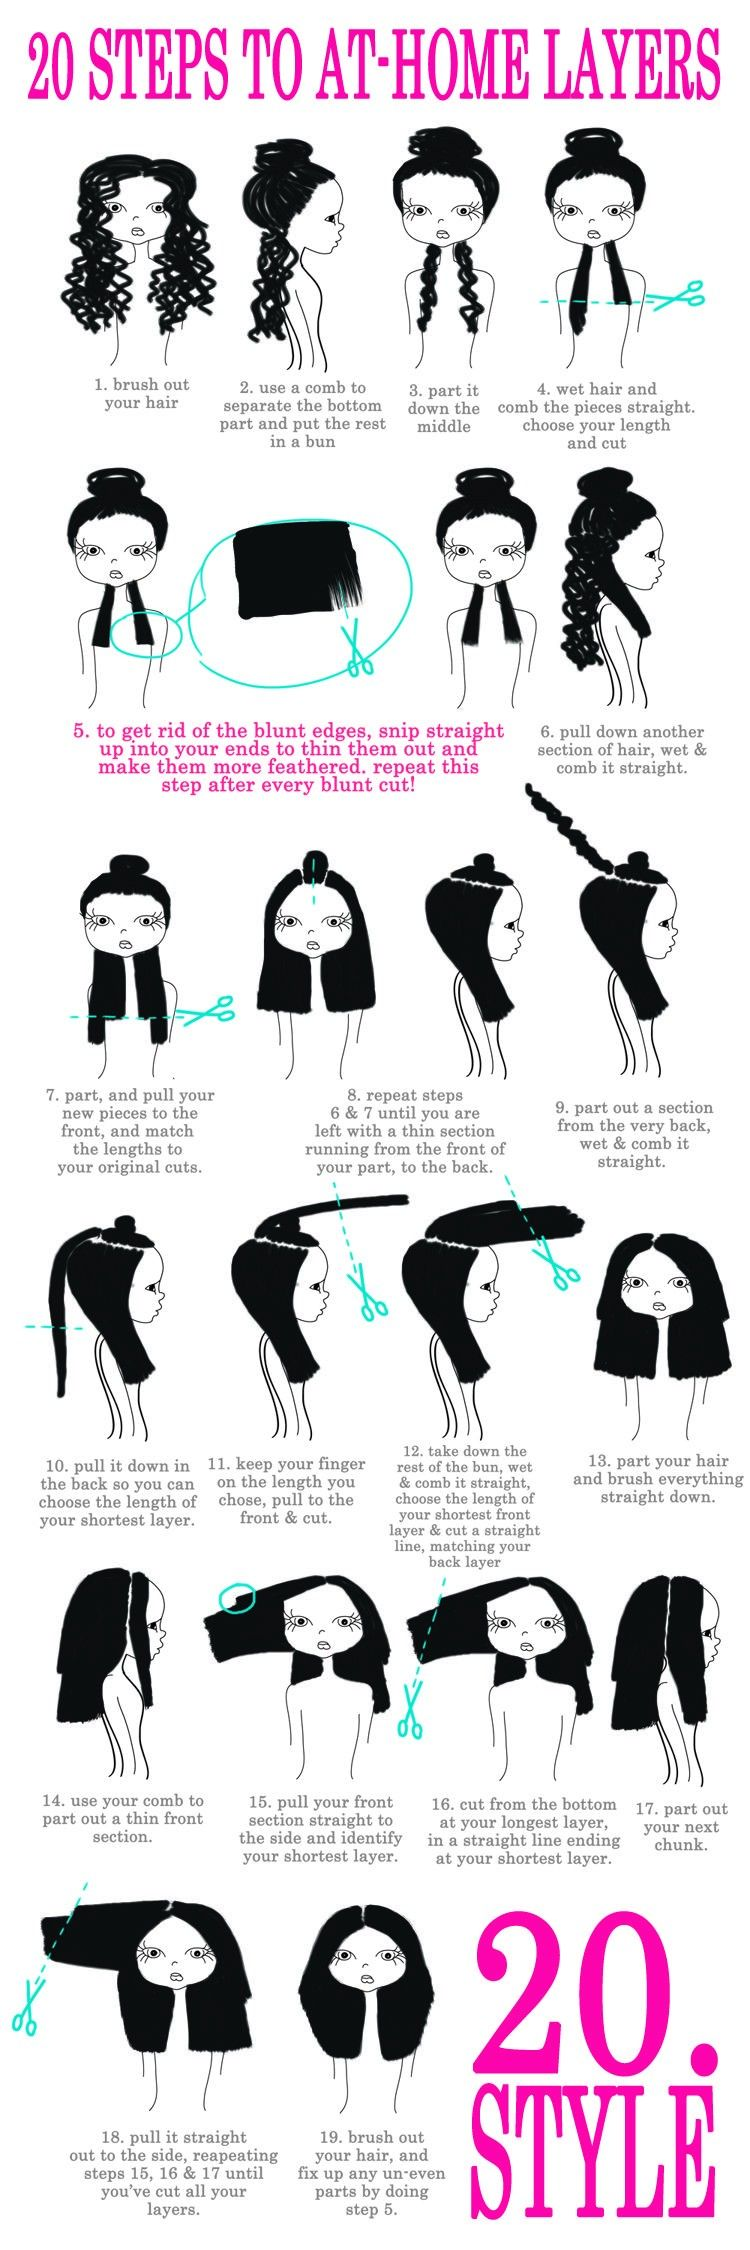 Pin By Malissa Herbote Buchite On Hair How To Teniques Curly Hair Styles Layered Hair Diy Haircut